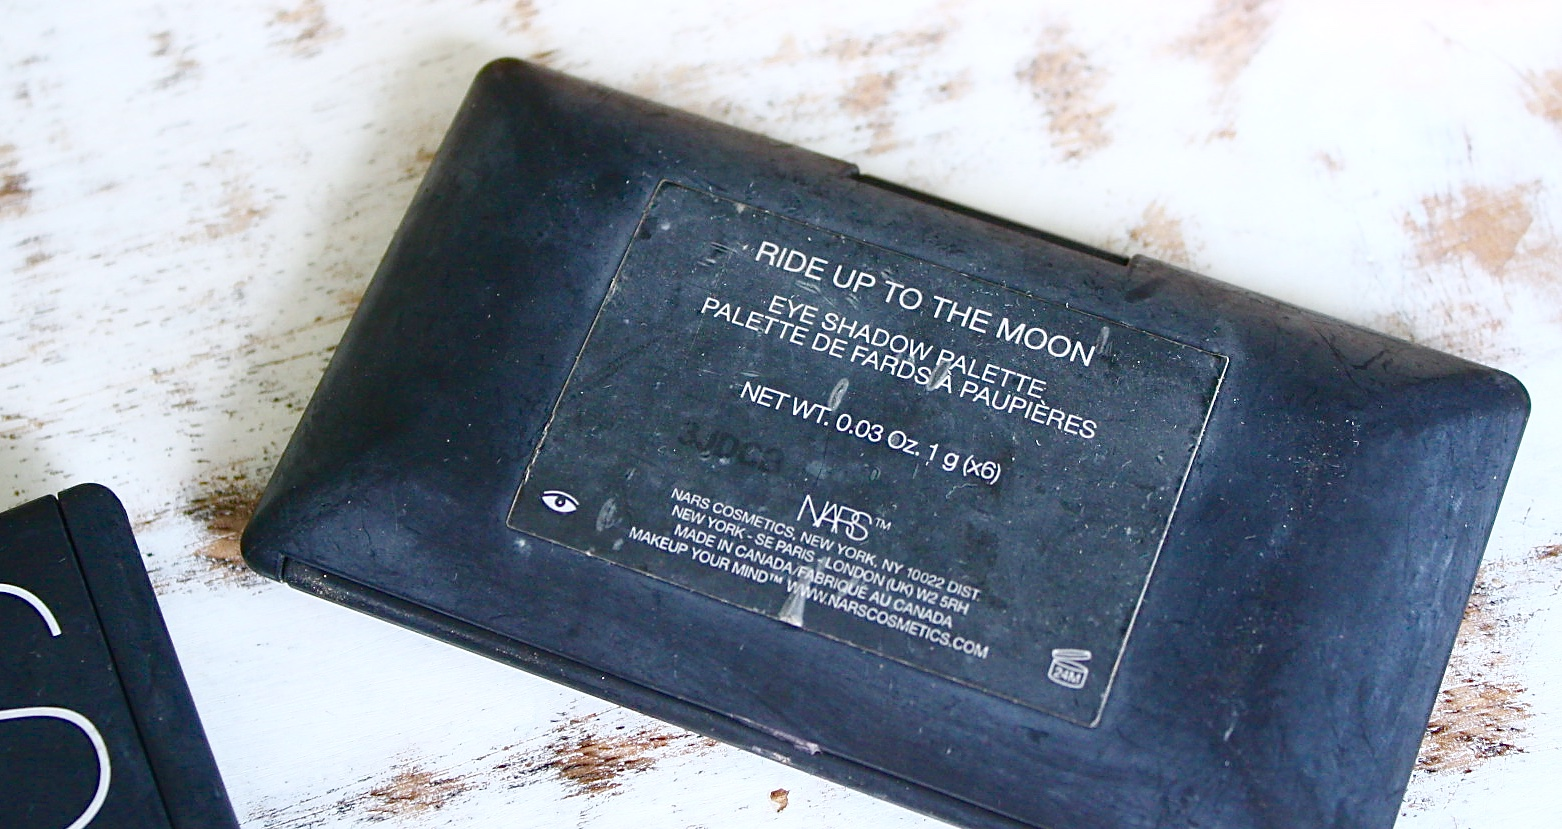 NARS Ride Up To The Moon Palette Review